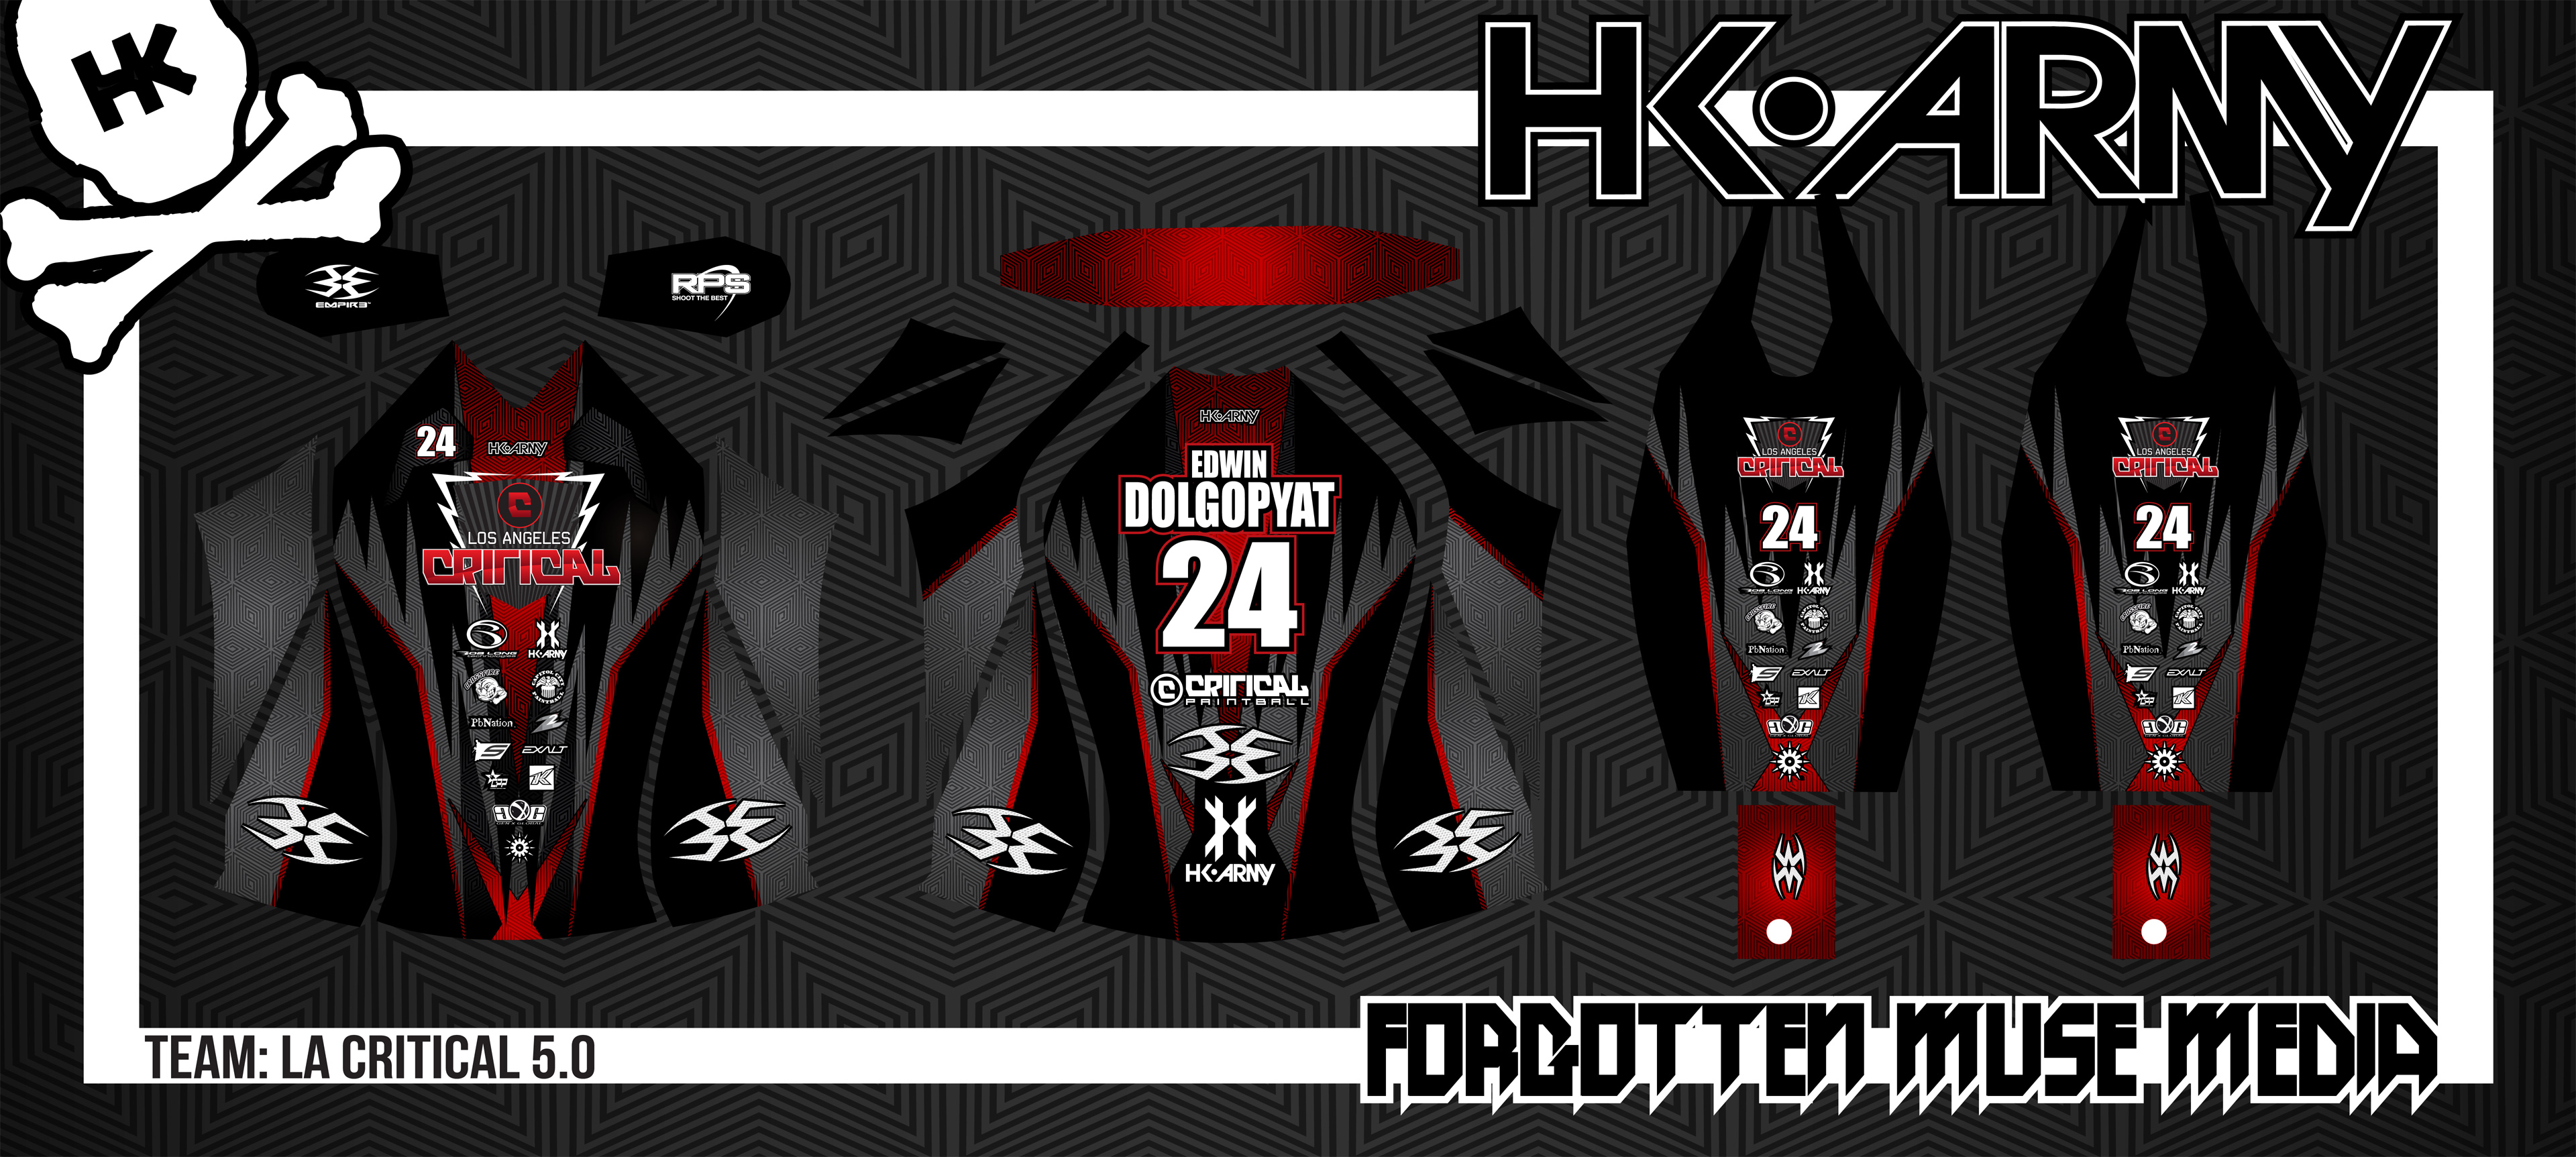 Exclusive: New 2012 Los Angeles Critical Jerseys by HK Army Released